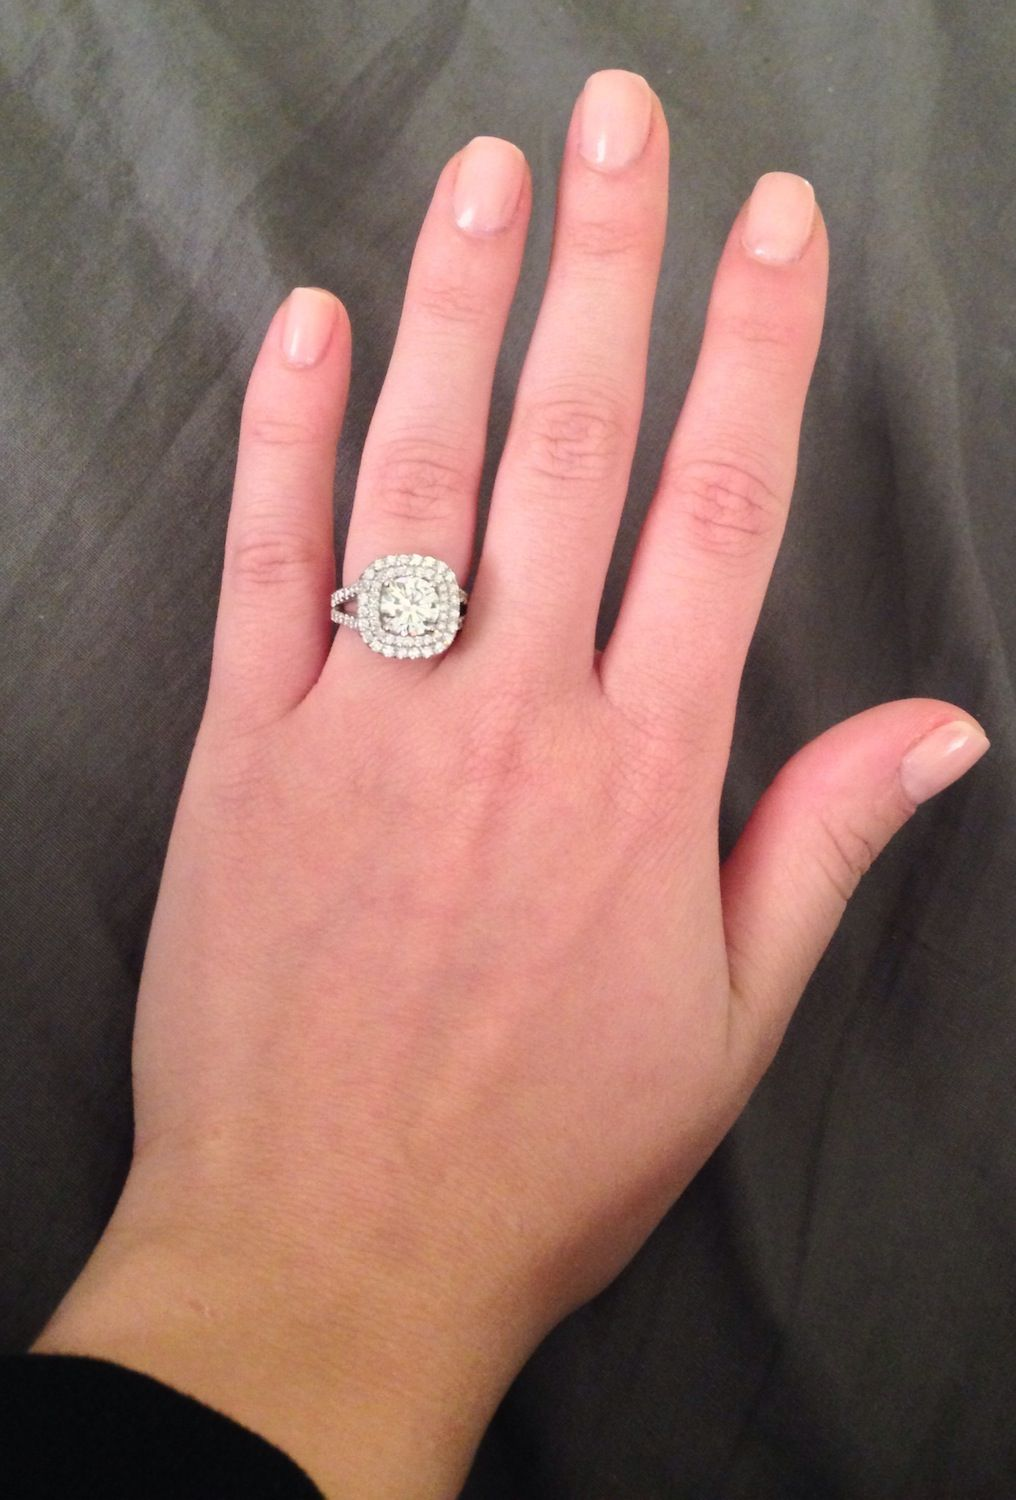 Double Halo Engagement Ring 13ct Center Stone With 1ct Surrounding Stones   Total = 23